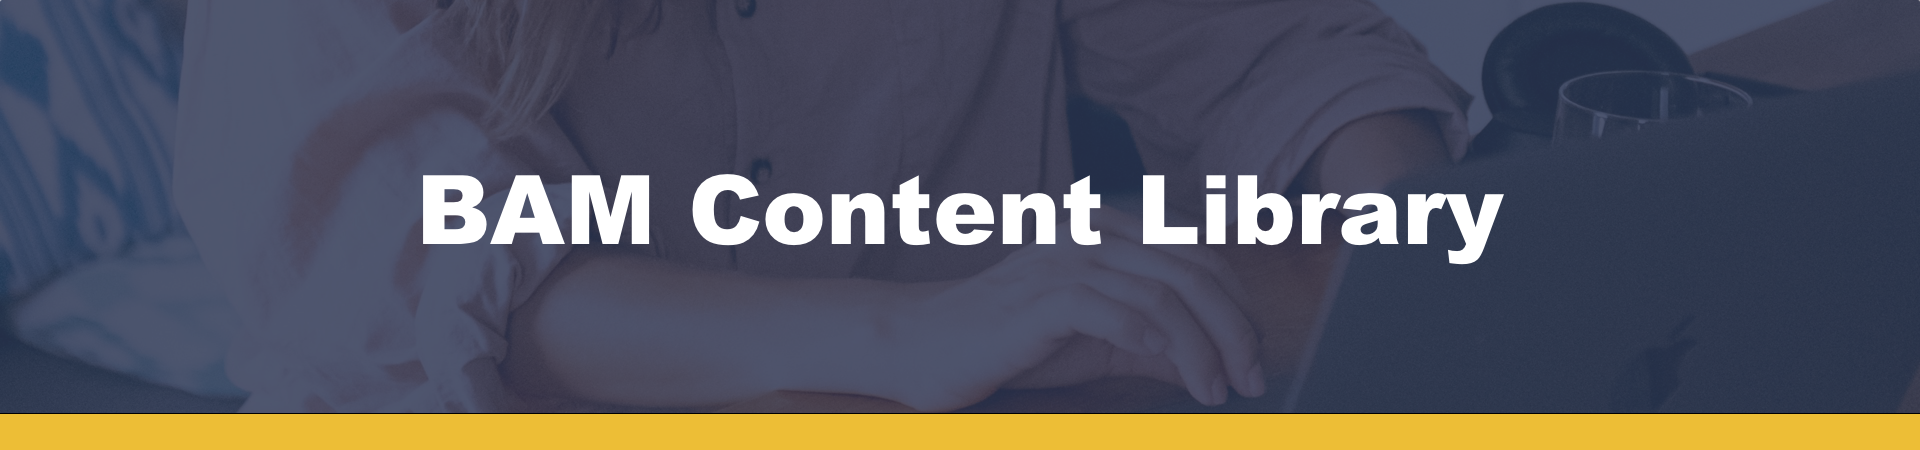 BAM Content Library Banner Image